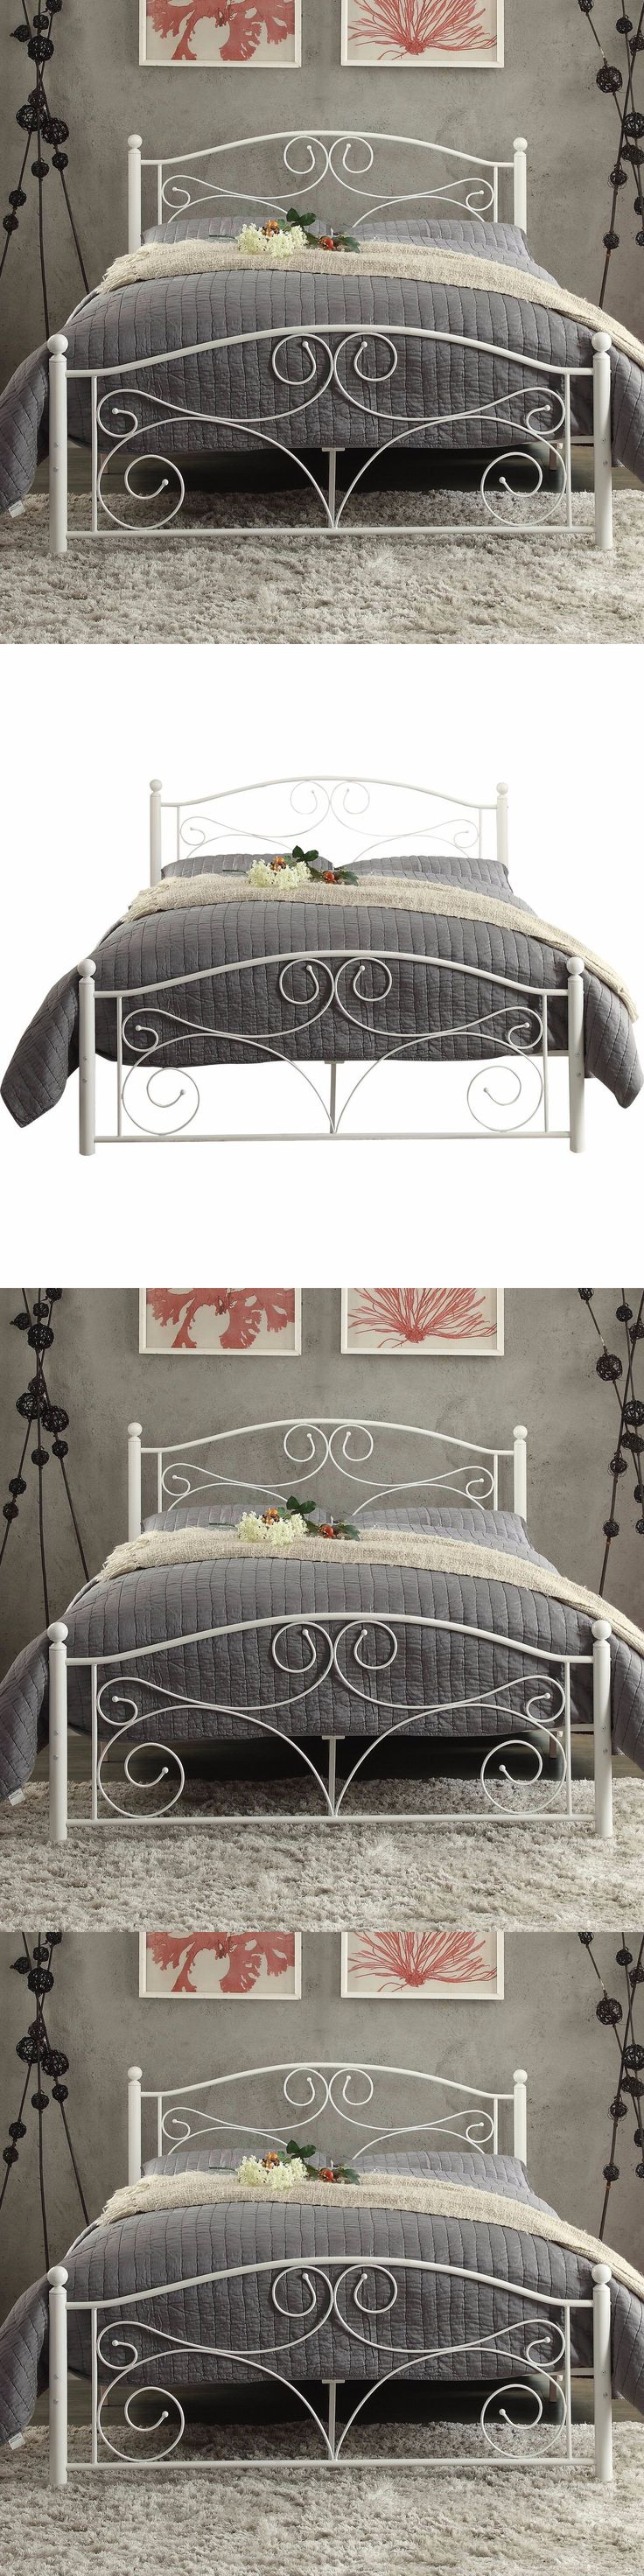 Beds and Bed Frames 175758: Wrought Iron Bed Frame Full Size Panel Headboard Footboard Set Bedroom Furniture -> BUY IT NOW ONLY: $198 on eBay!